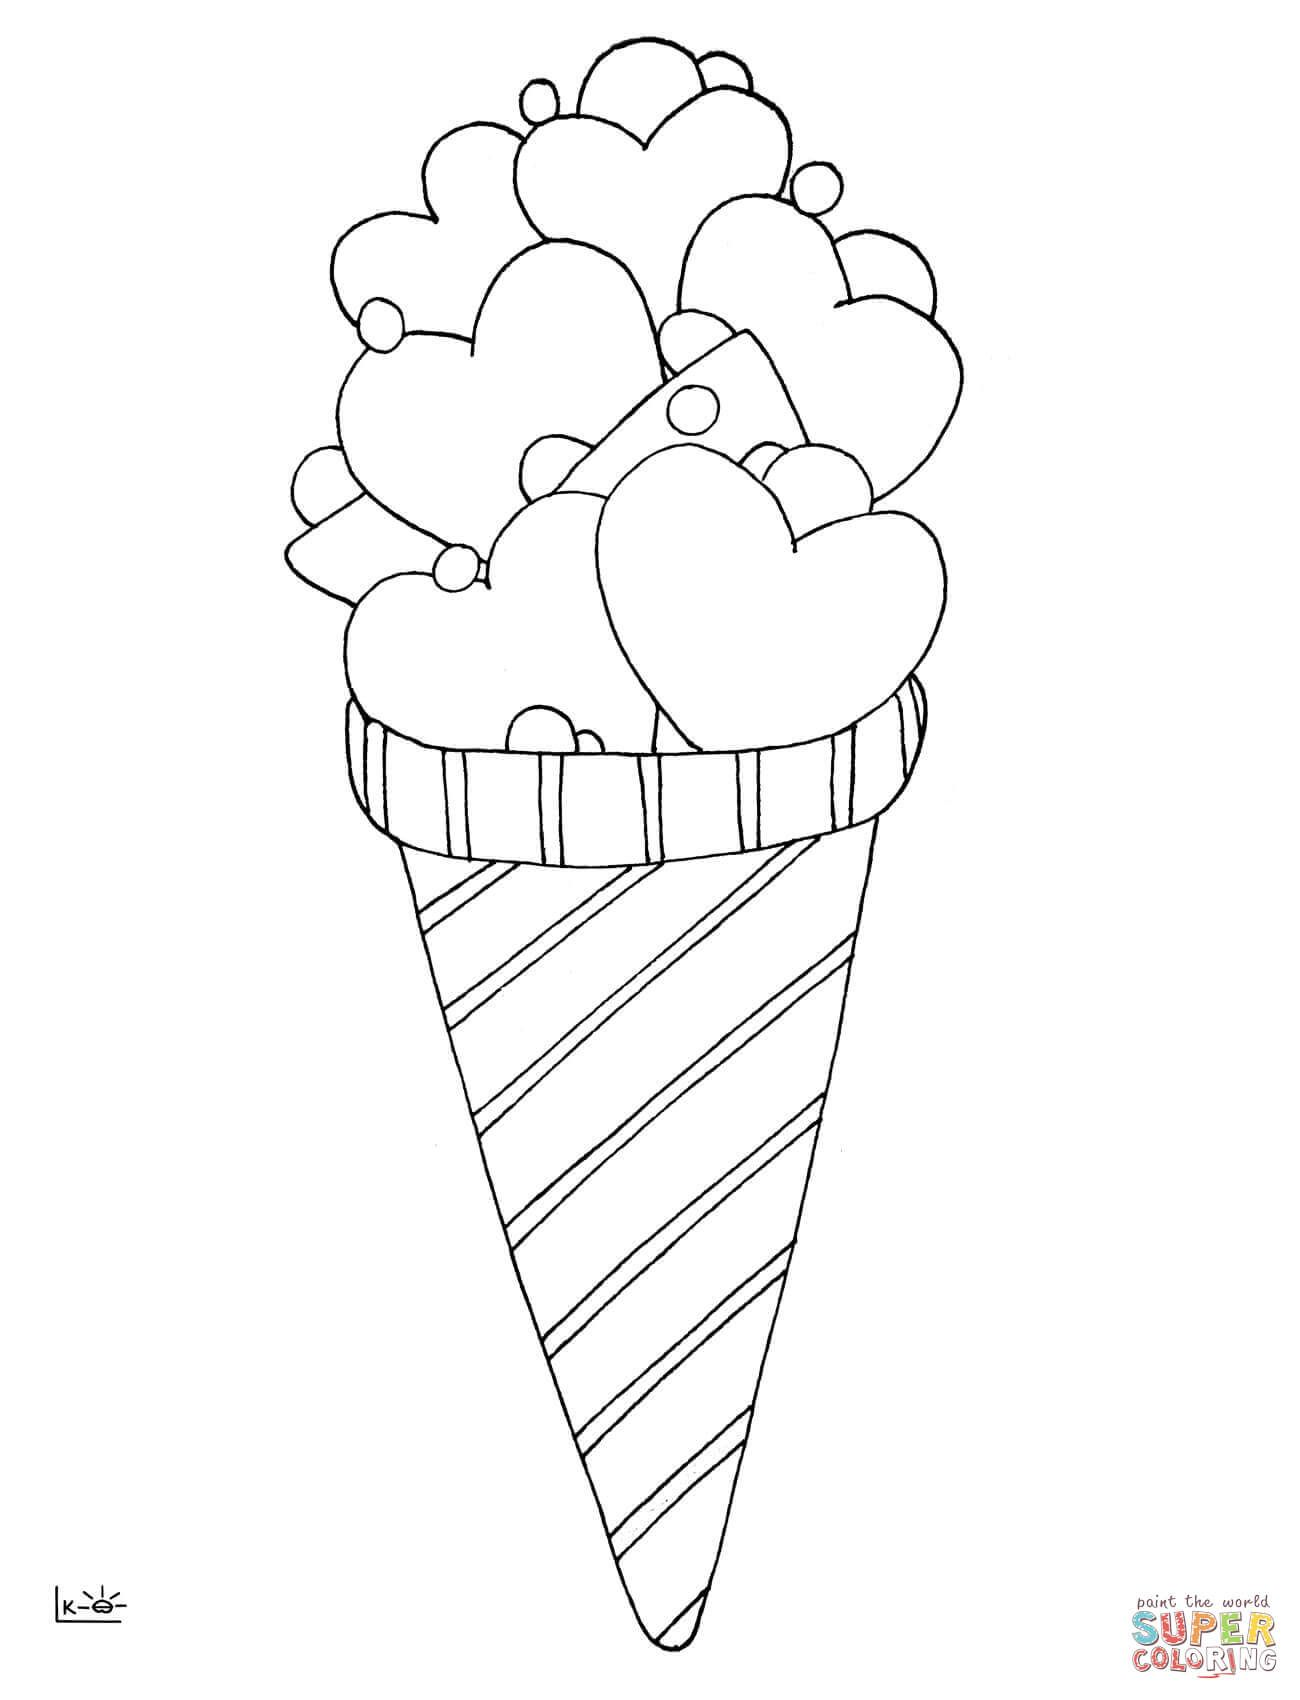 Love Ice Cream Coloring Page Free Printable Coloring Pages Ice Cream Coloring Pages Free Printable Coloring Pages Coloring Pages